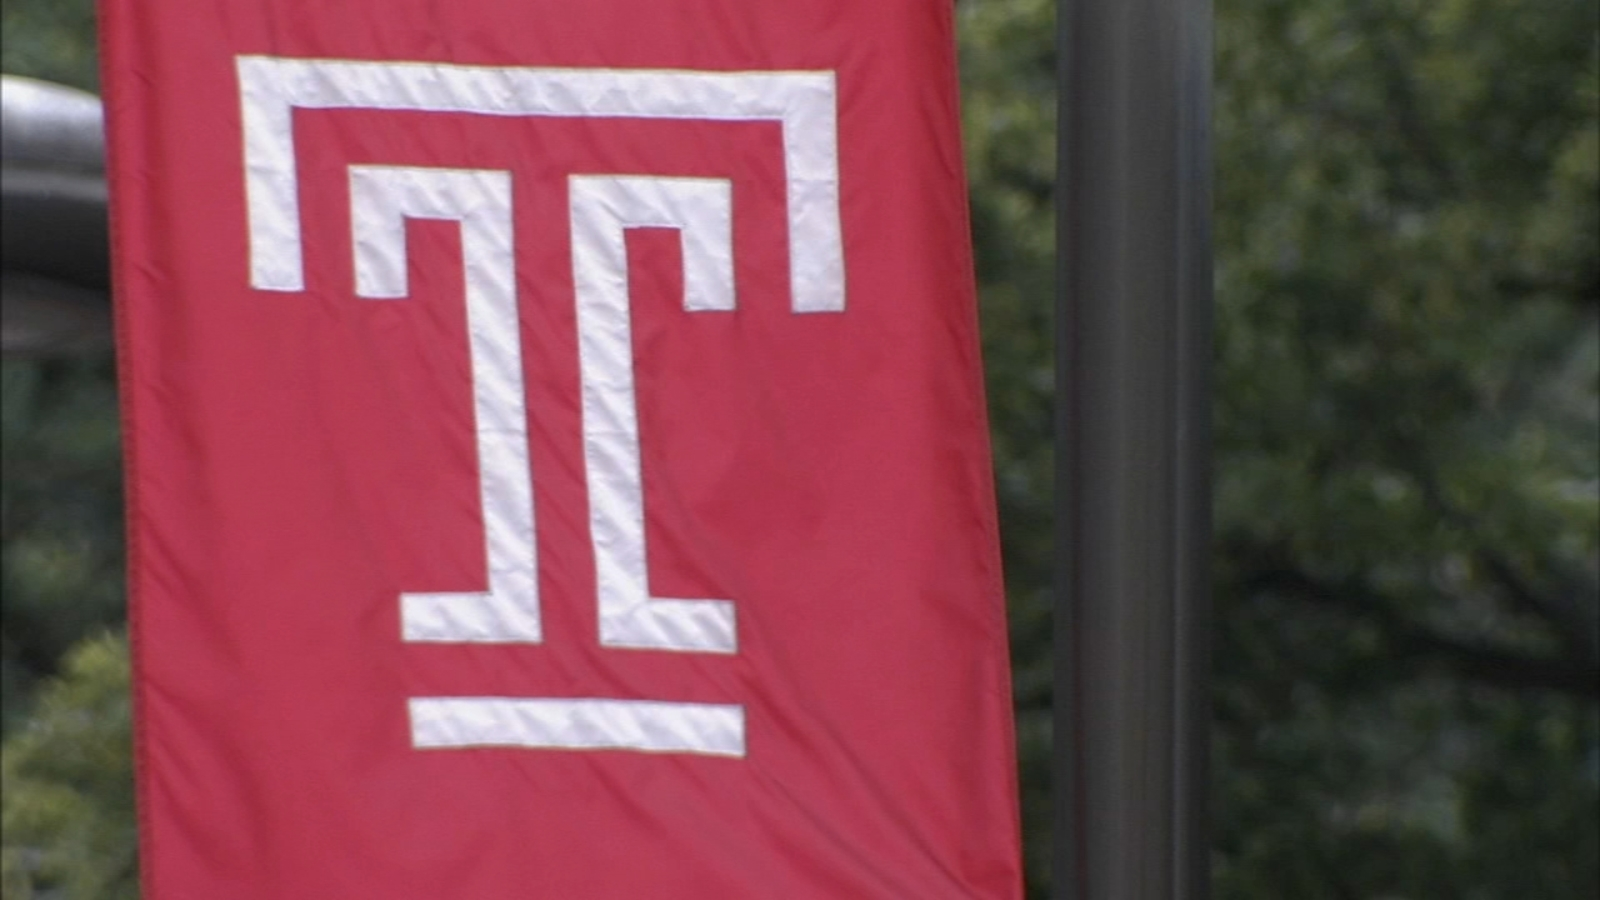 Temple University's online MBA program drops in rankings after scandal